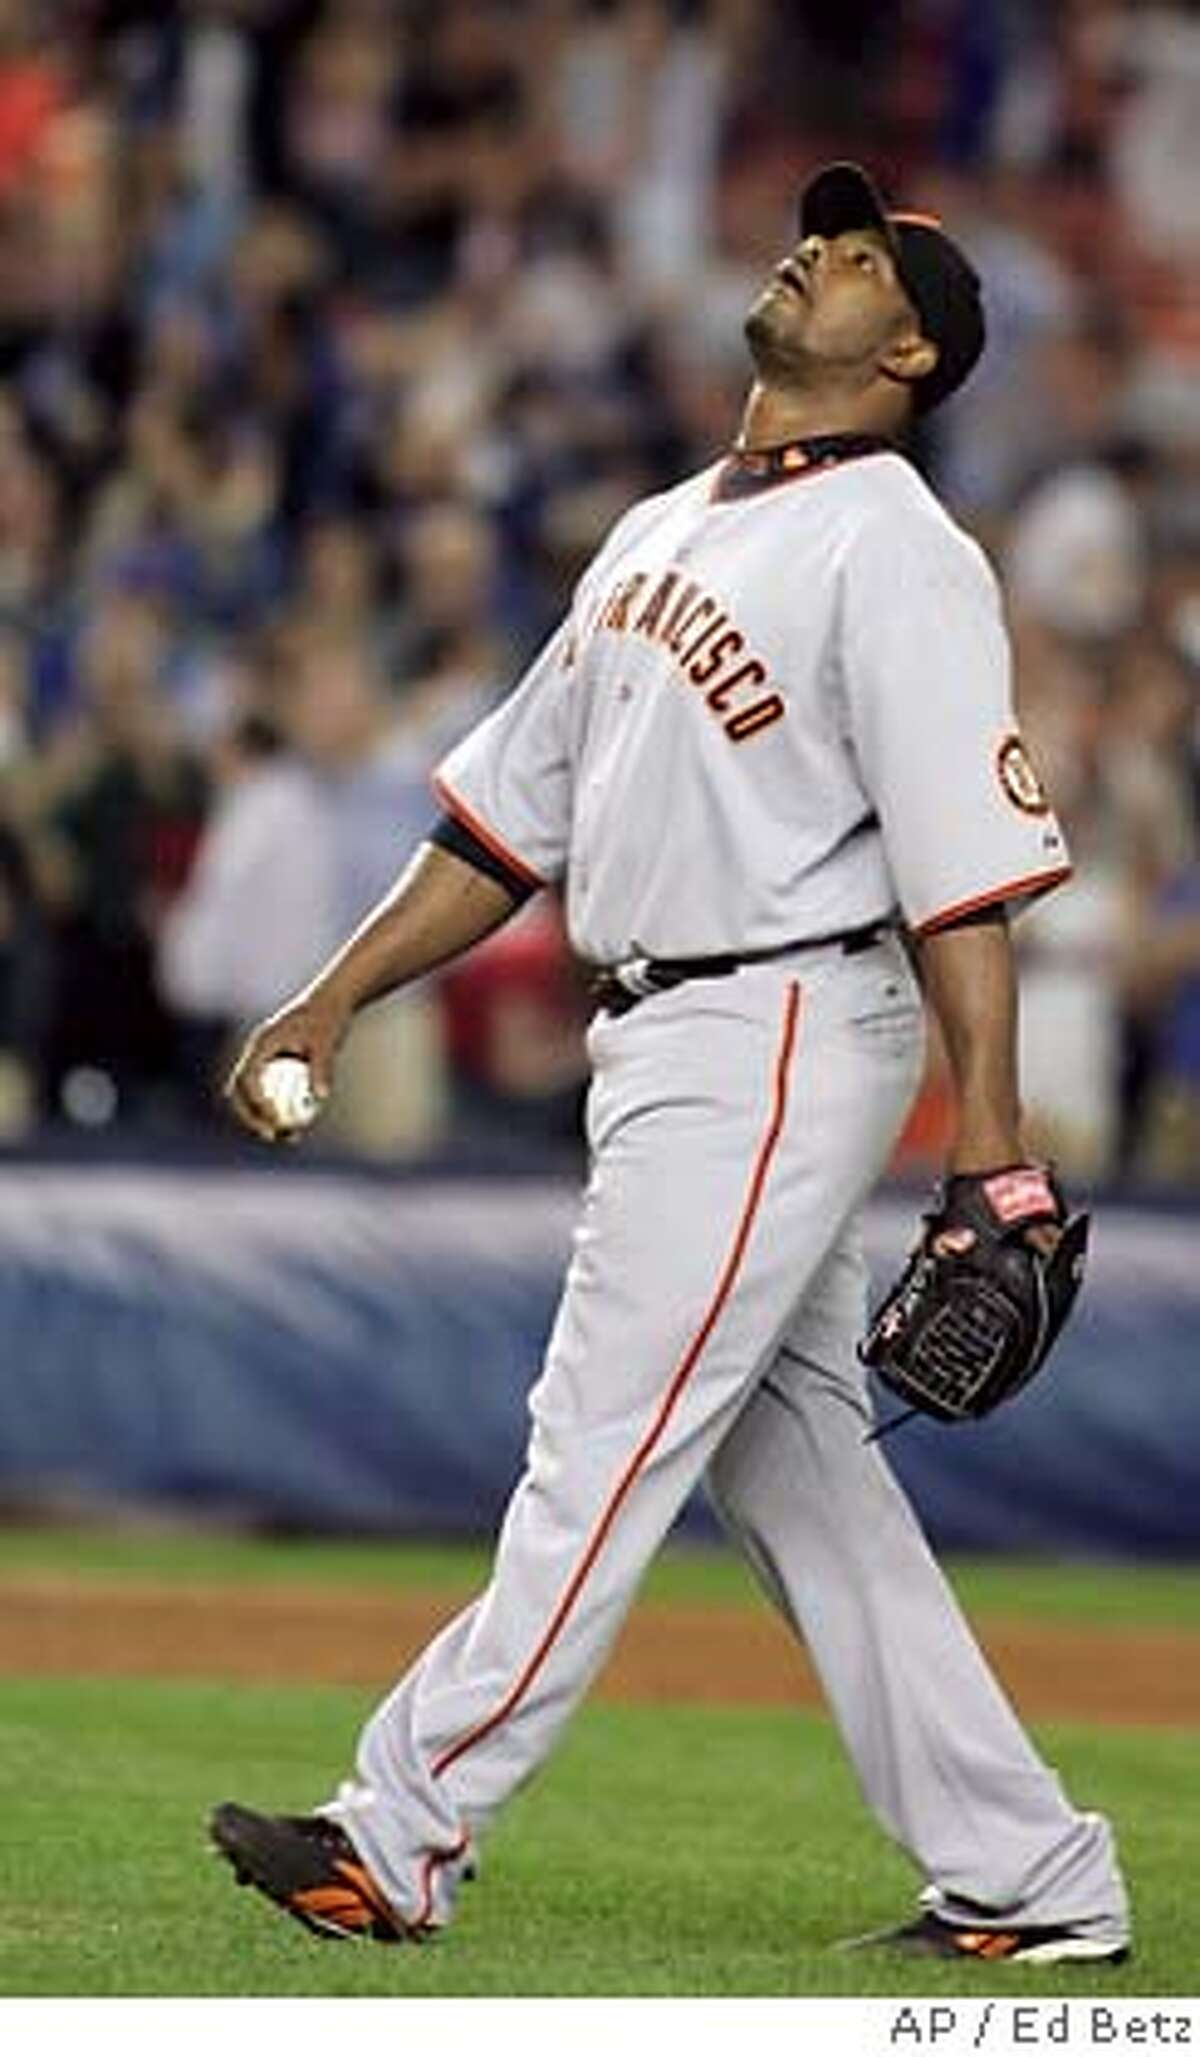 San Francisco Giants' Armando Benitez reacts after he was called with a balk to allow New York Mets Jose Reyes to score during the 12th inning of their baseball game, Tuesday, May 29, 2007 at Shea Stadium in New York. (AP Photo/Ed Betz)